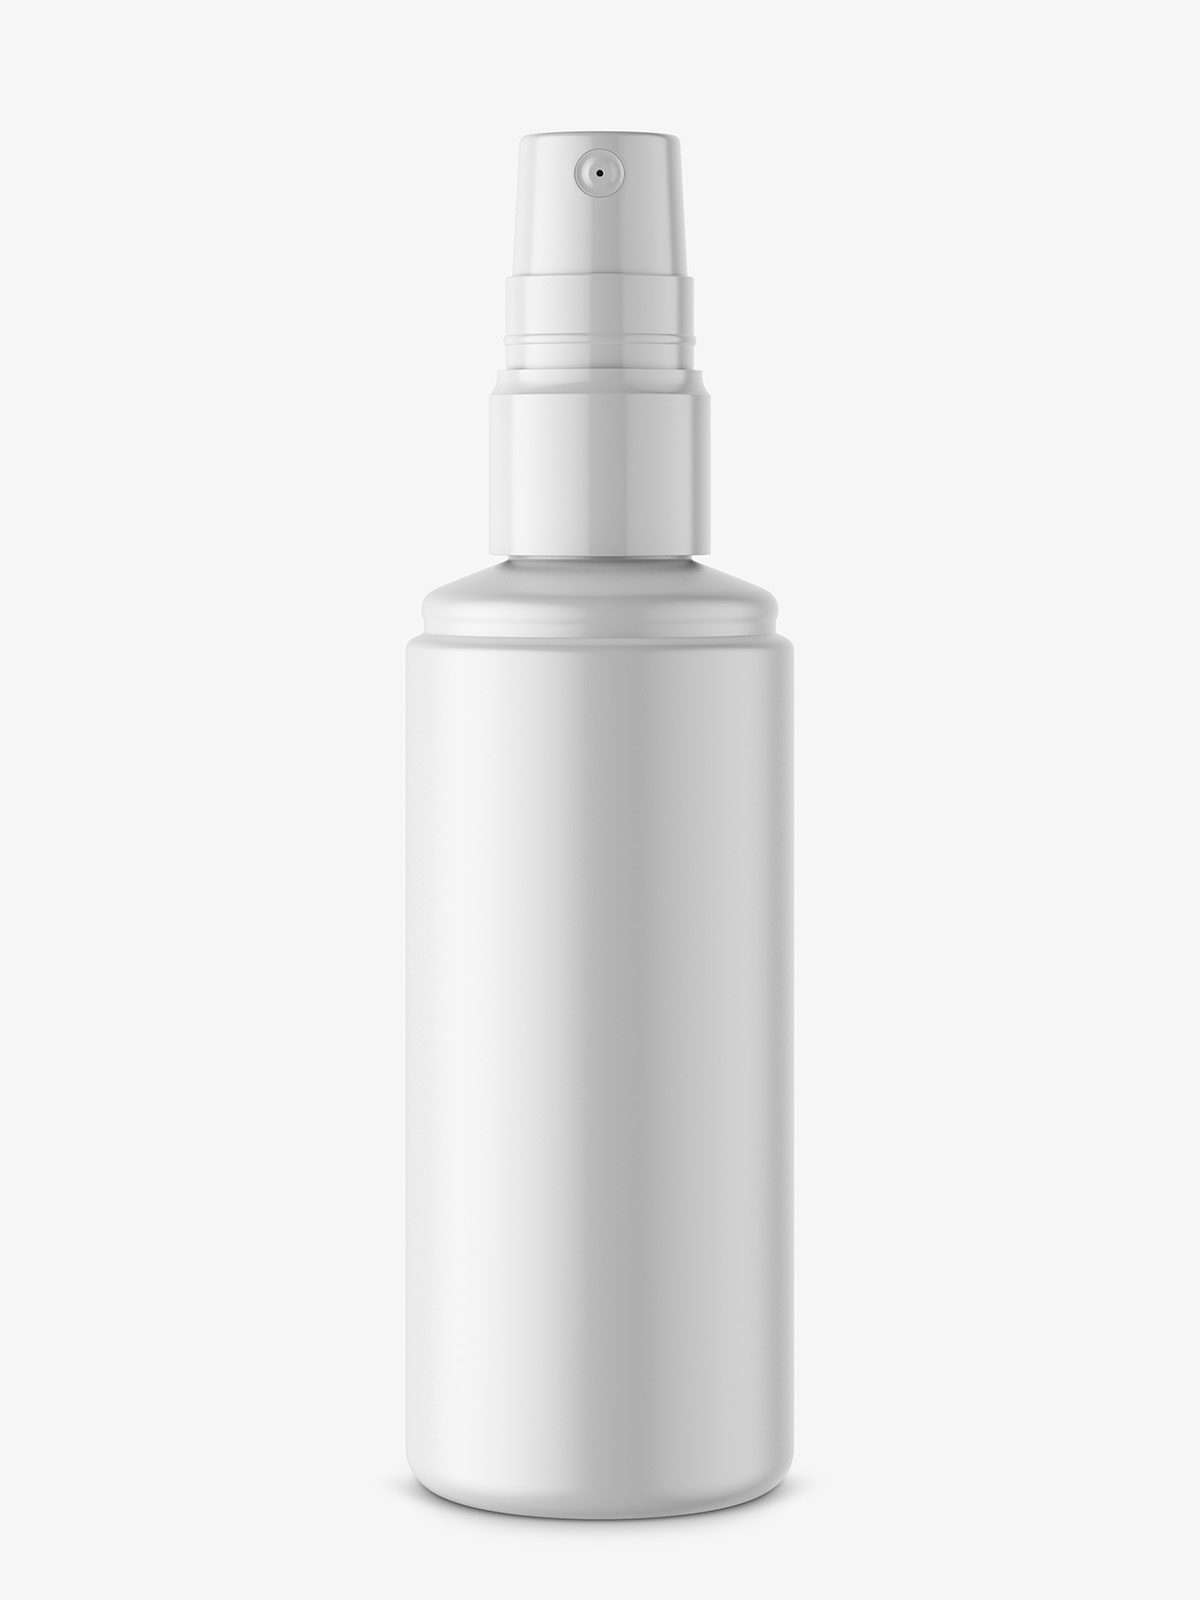 Bottle with atomizer mockup / matte